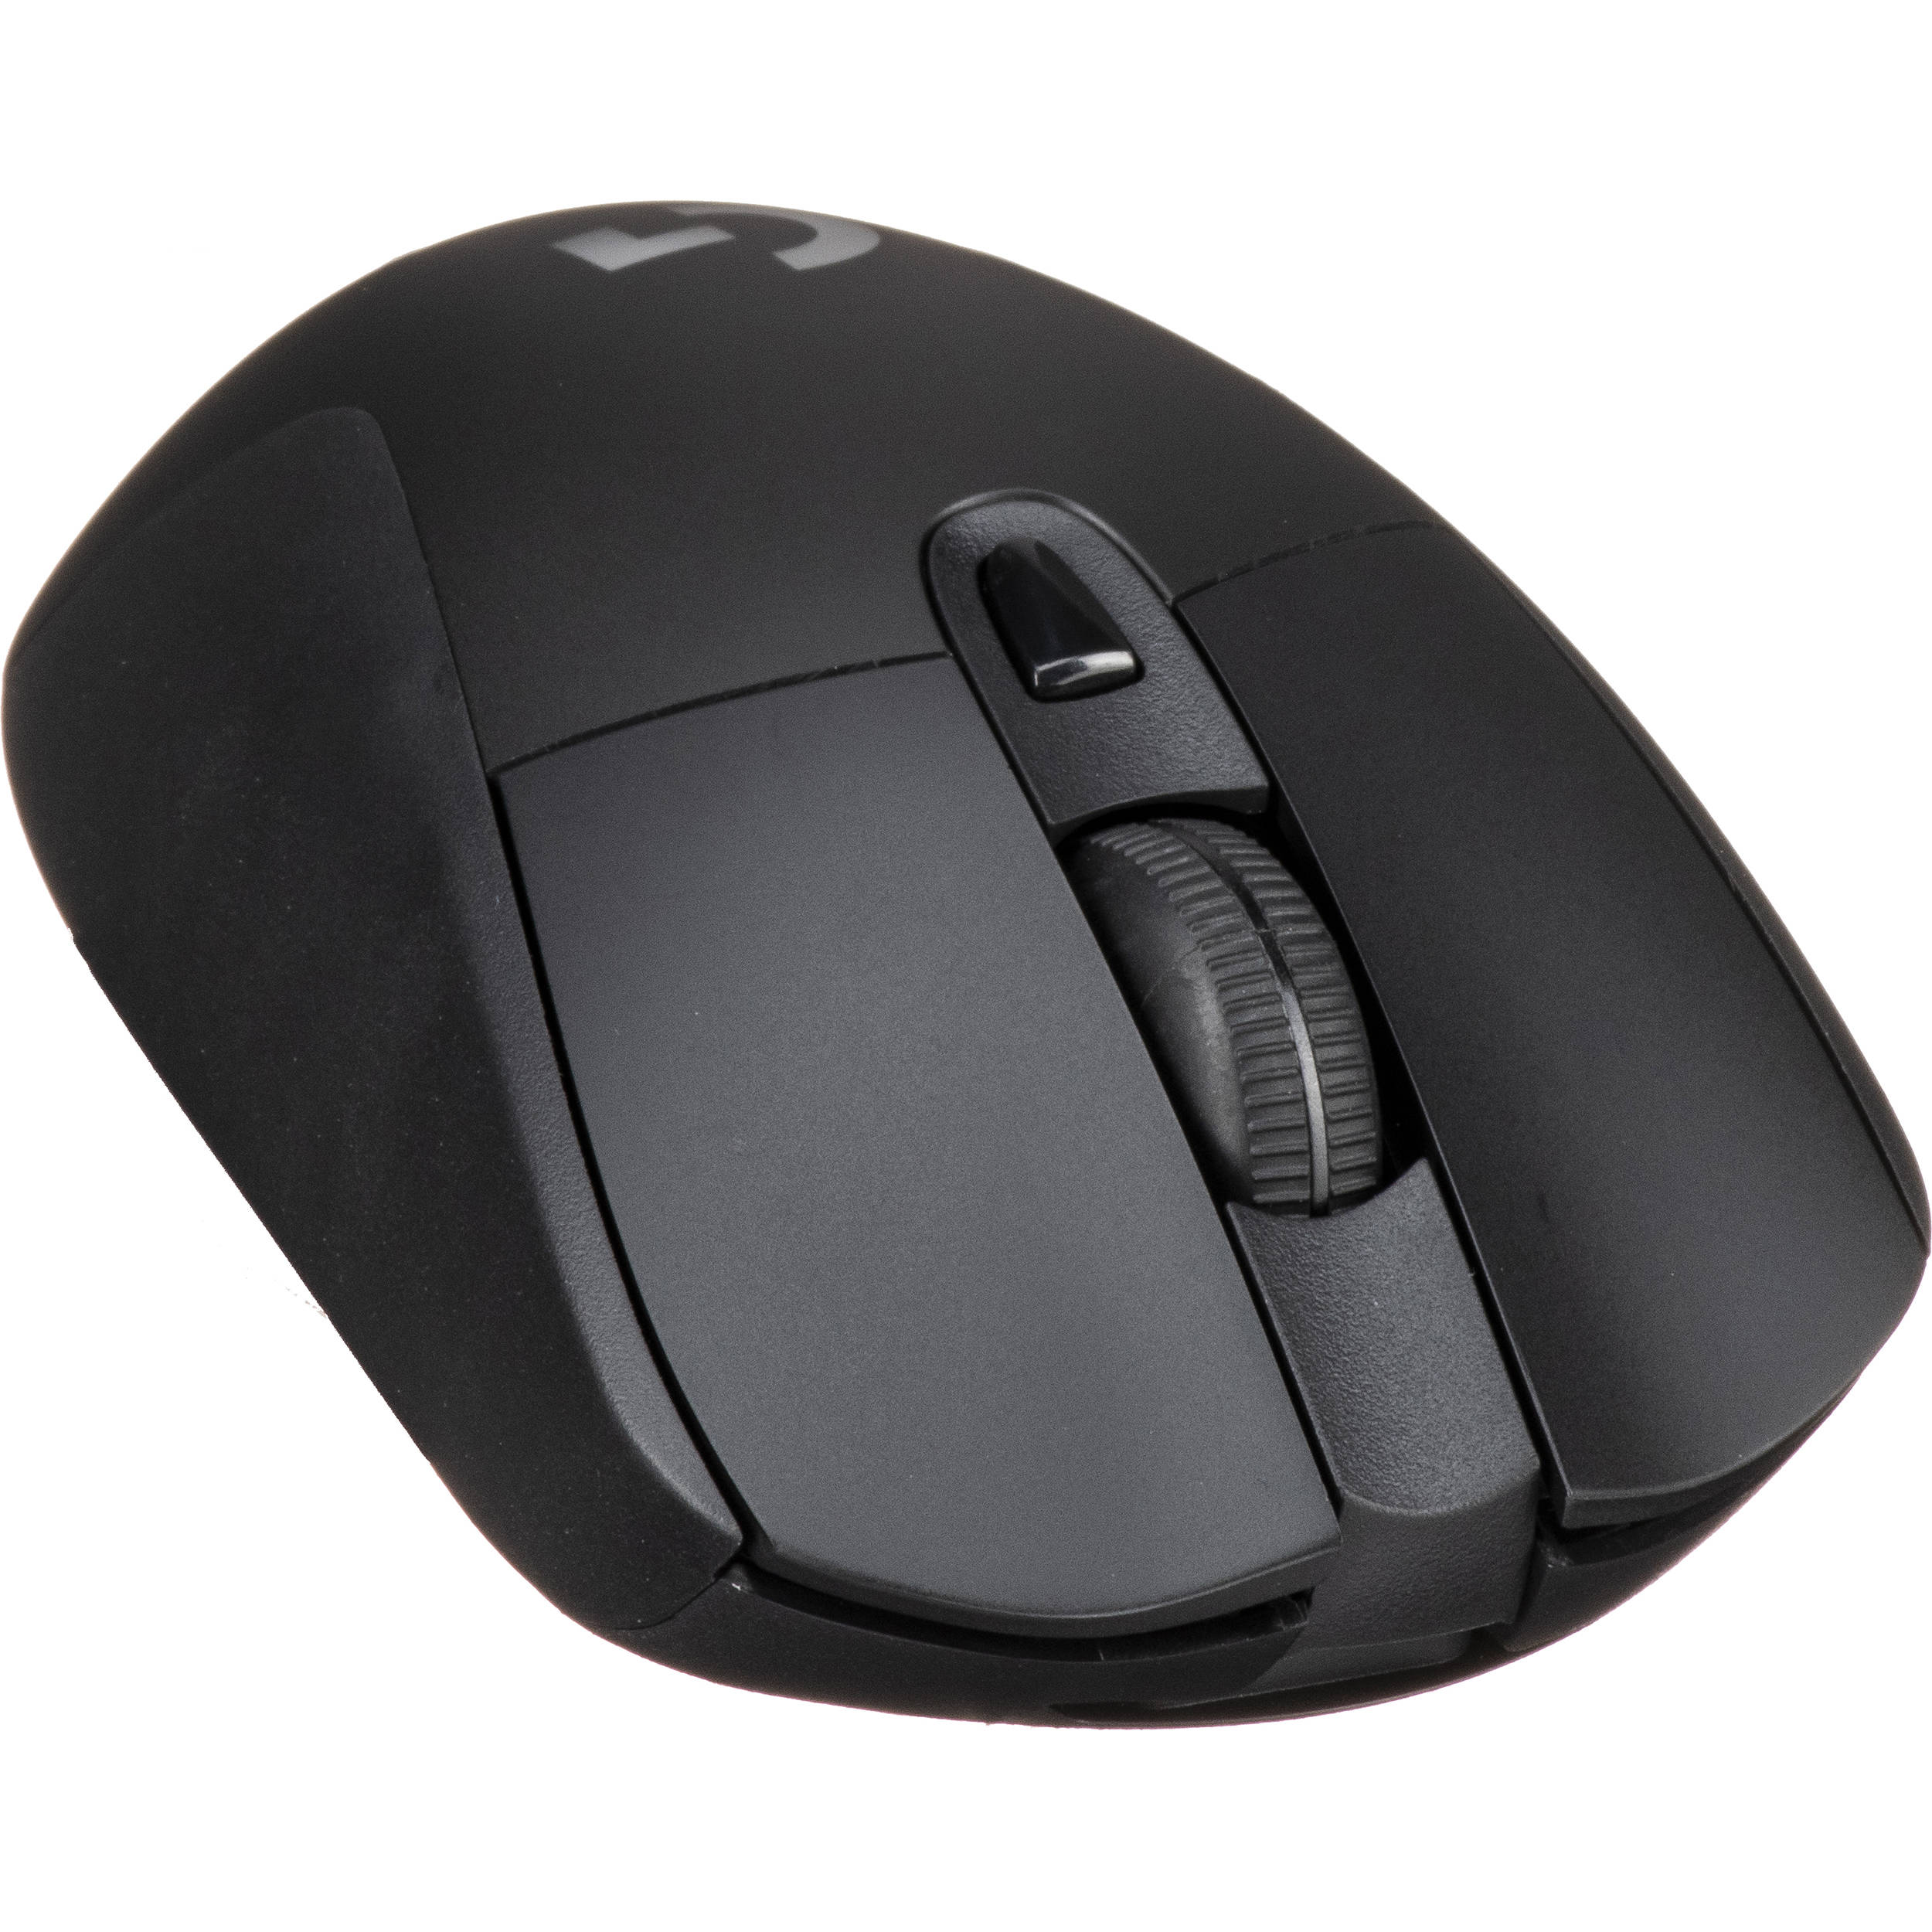 Logitech G703 HERO Wireless Gaming Mouse